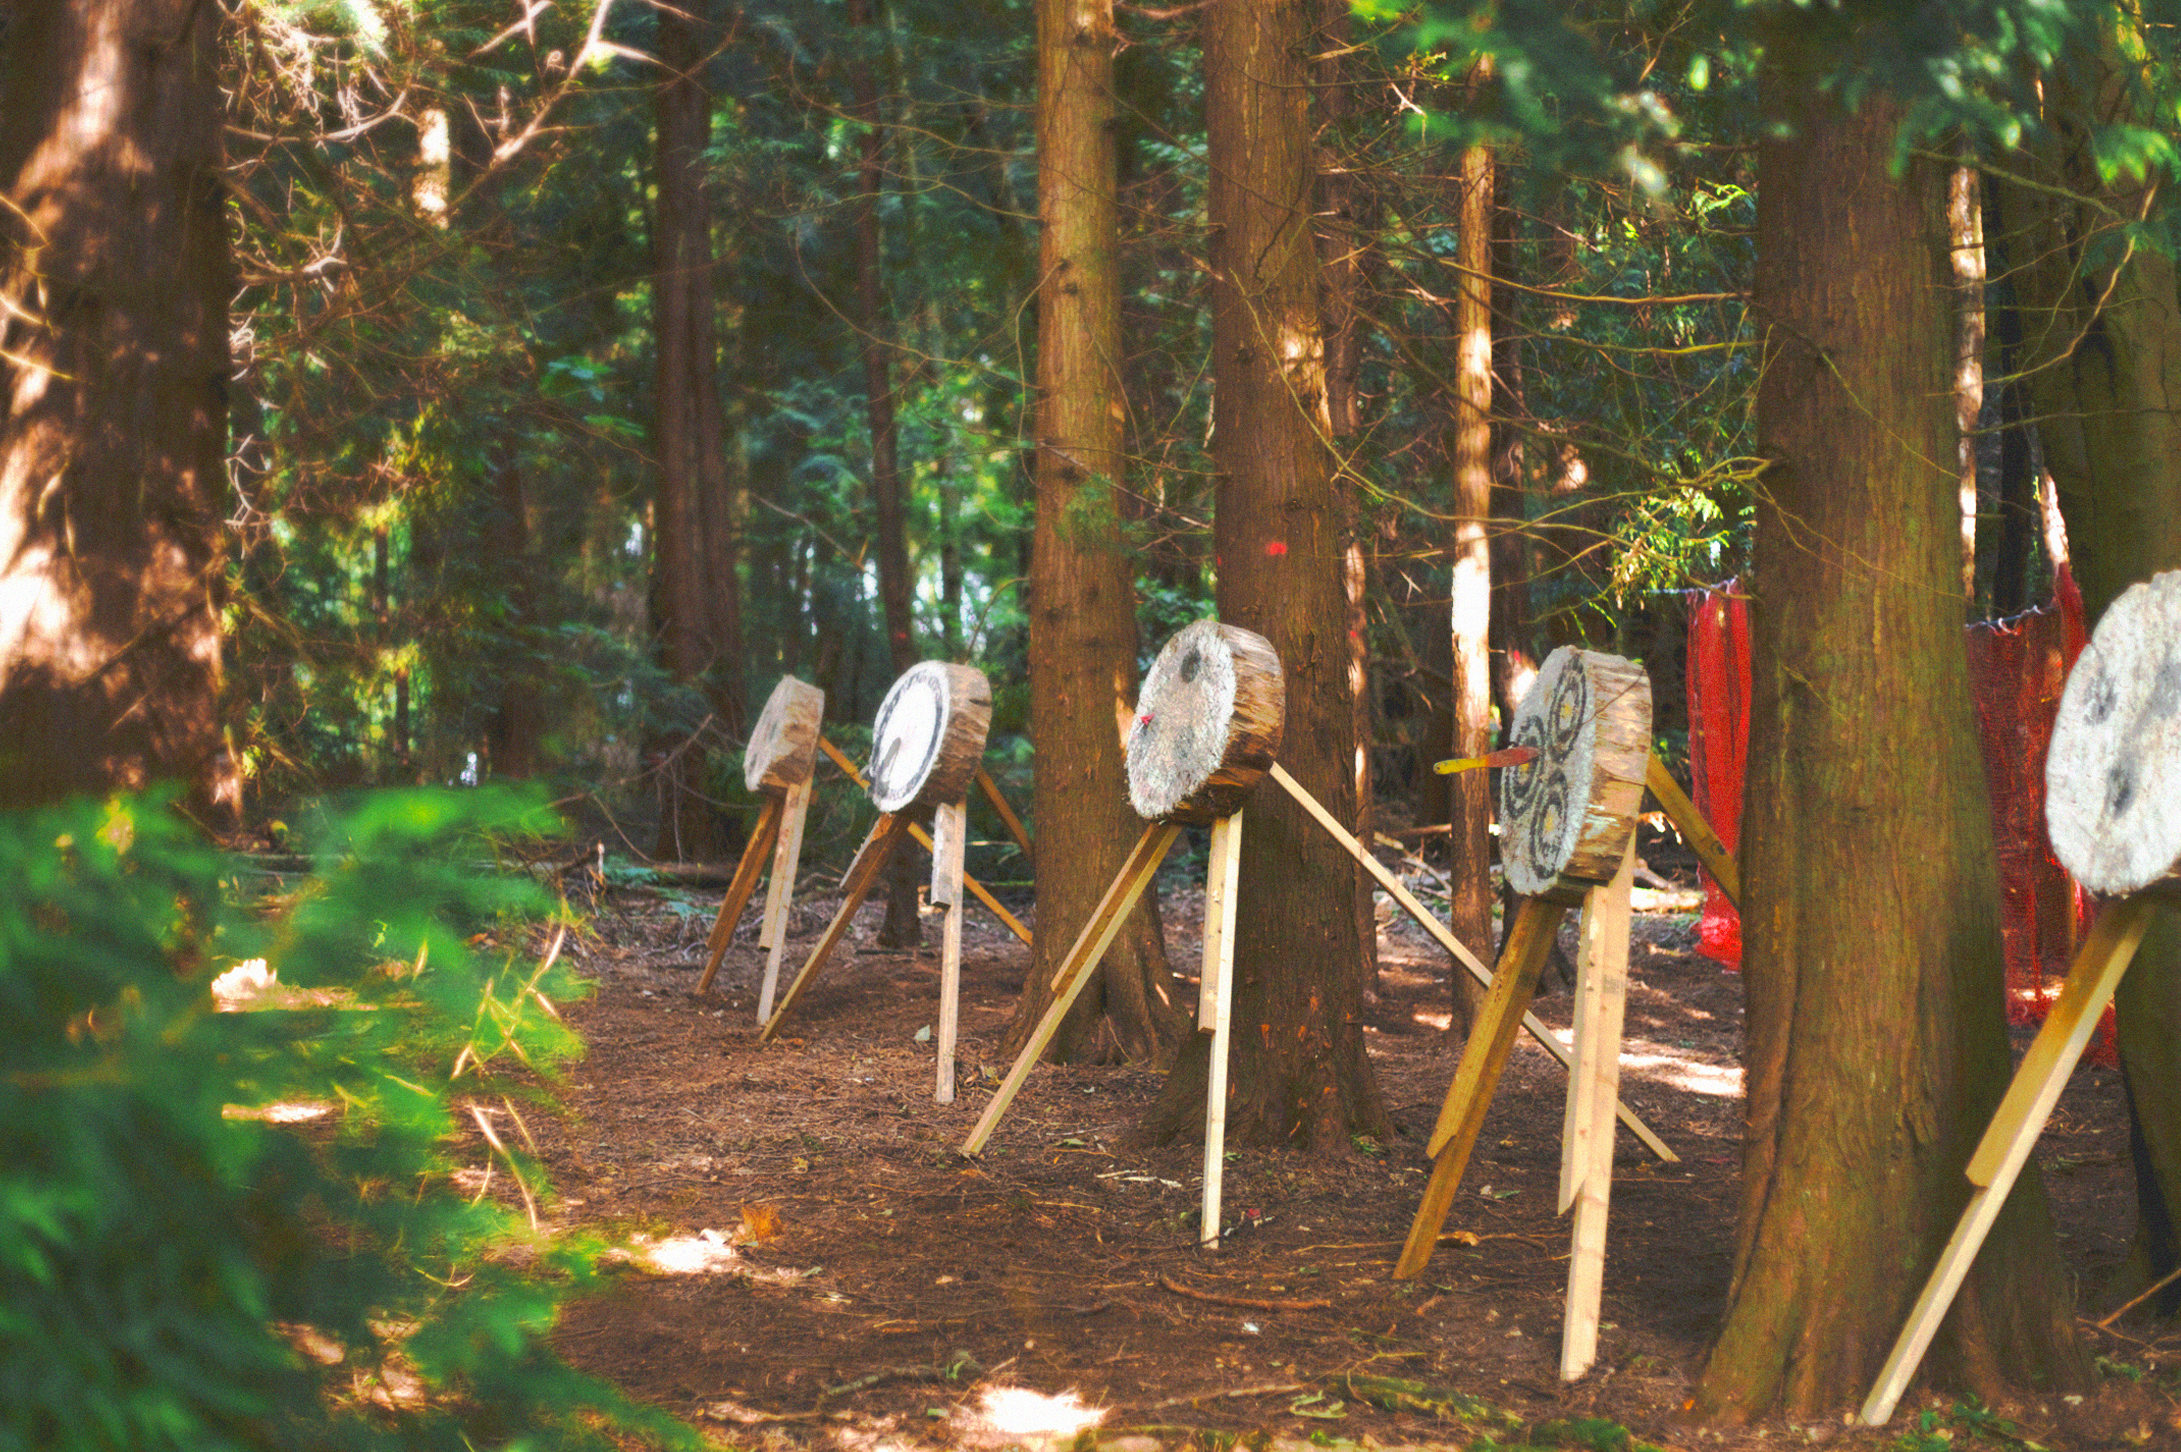 Archery targets at the archery range at Camp Wildfire. A summer weekend break in a forest near London and Kent. An outdoor woodland retreat featuring adventure activities, live music, DJs, parties and camping. Half summer adventure activity camp, half music festival, for adults only.